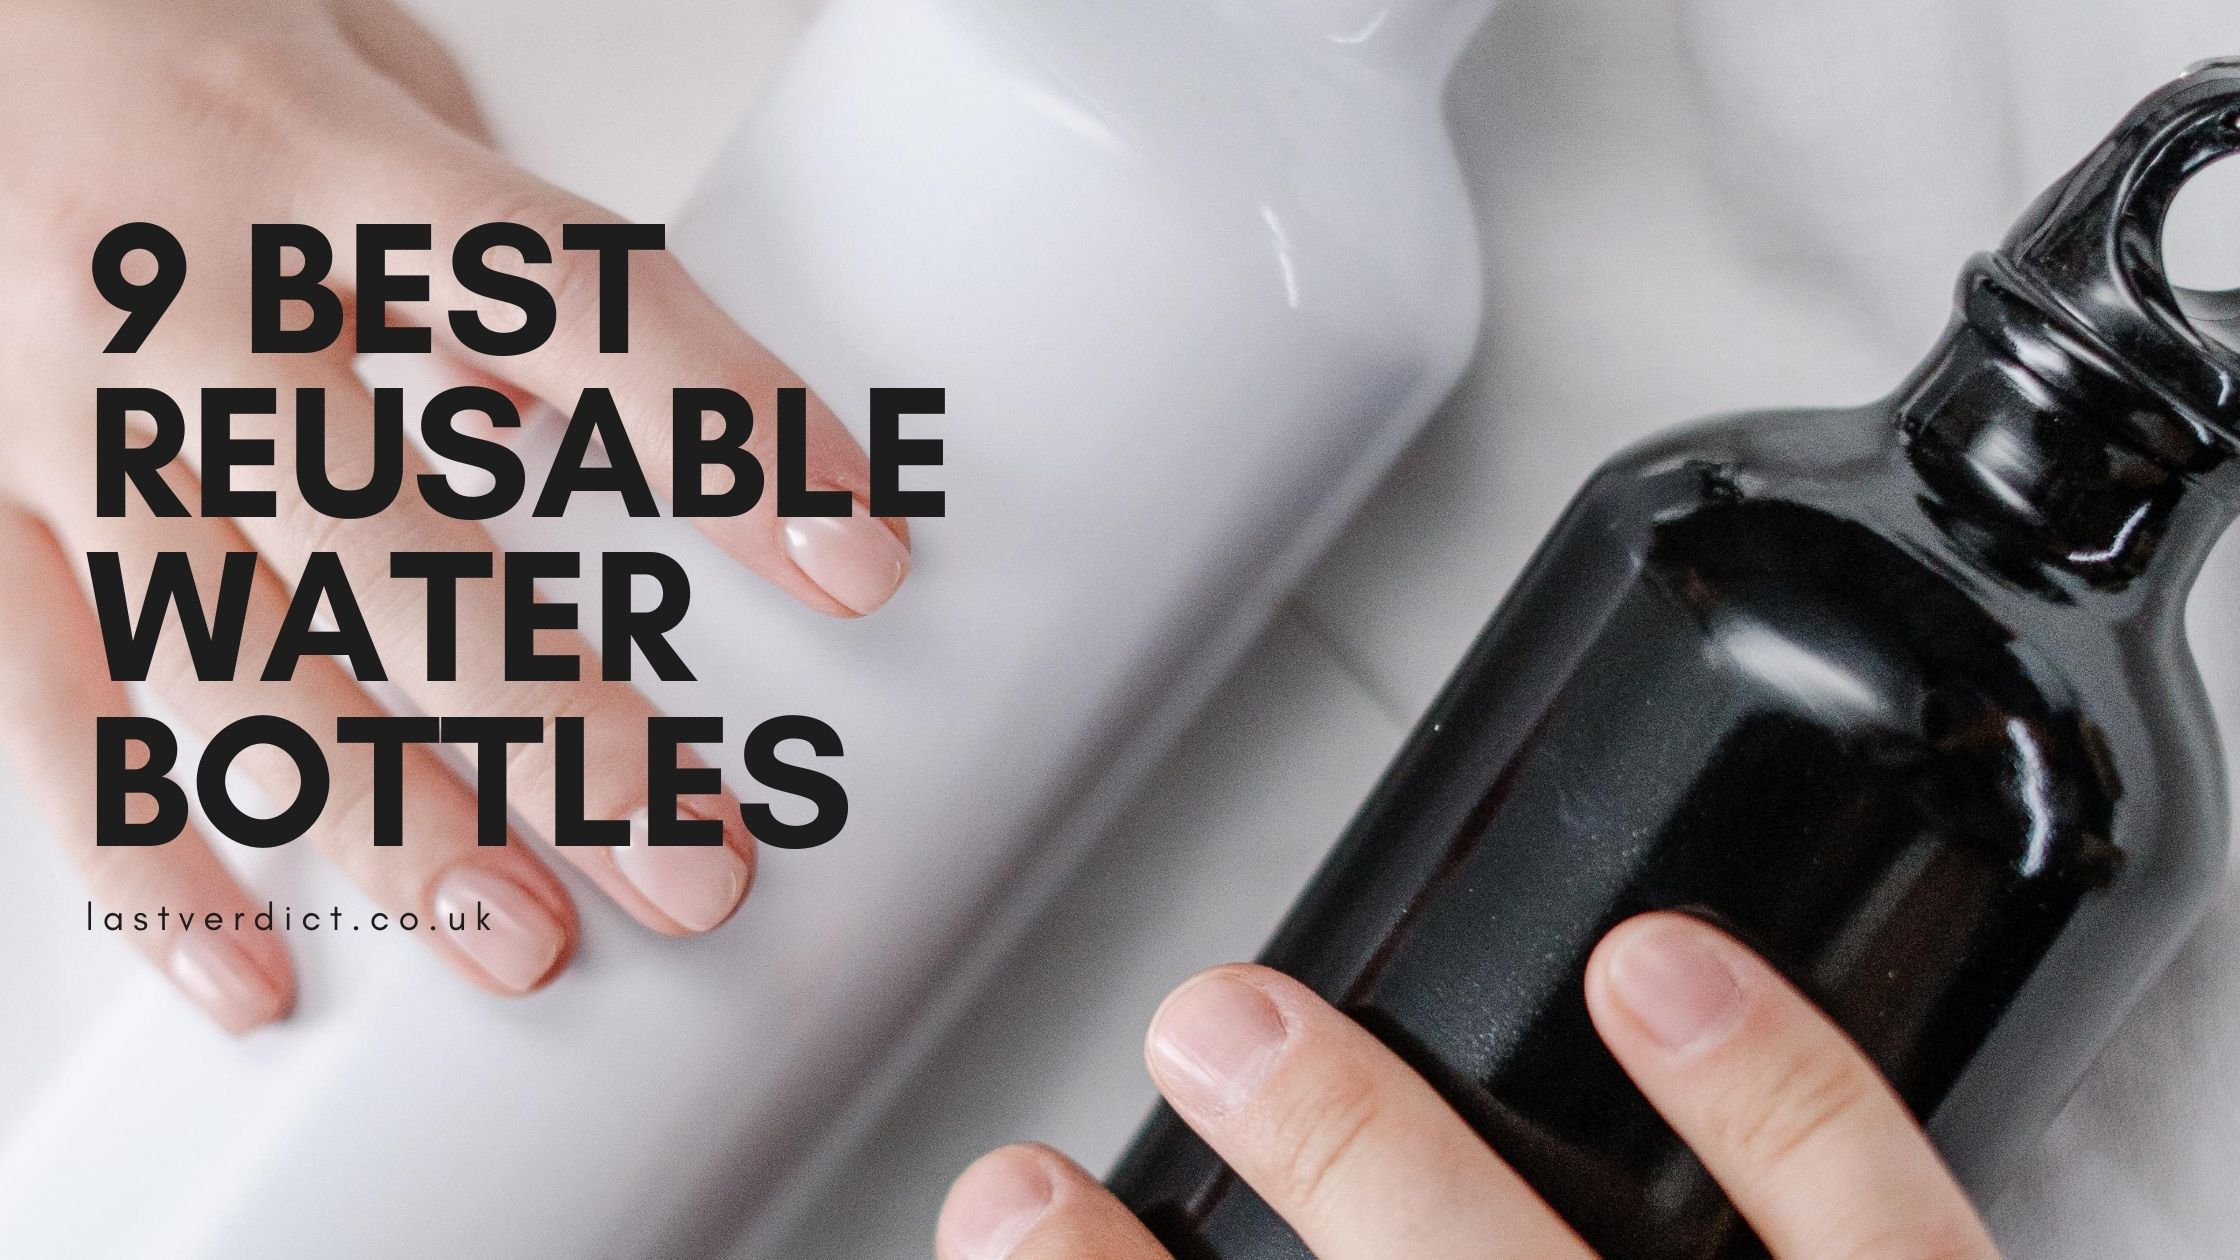 9 Best Reusable Water Bottles